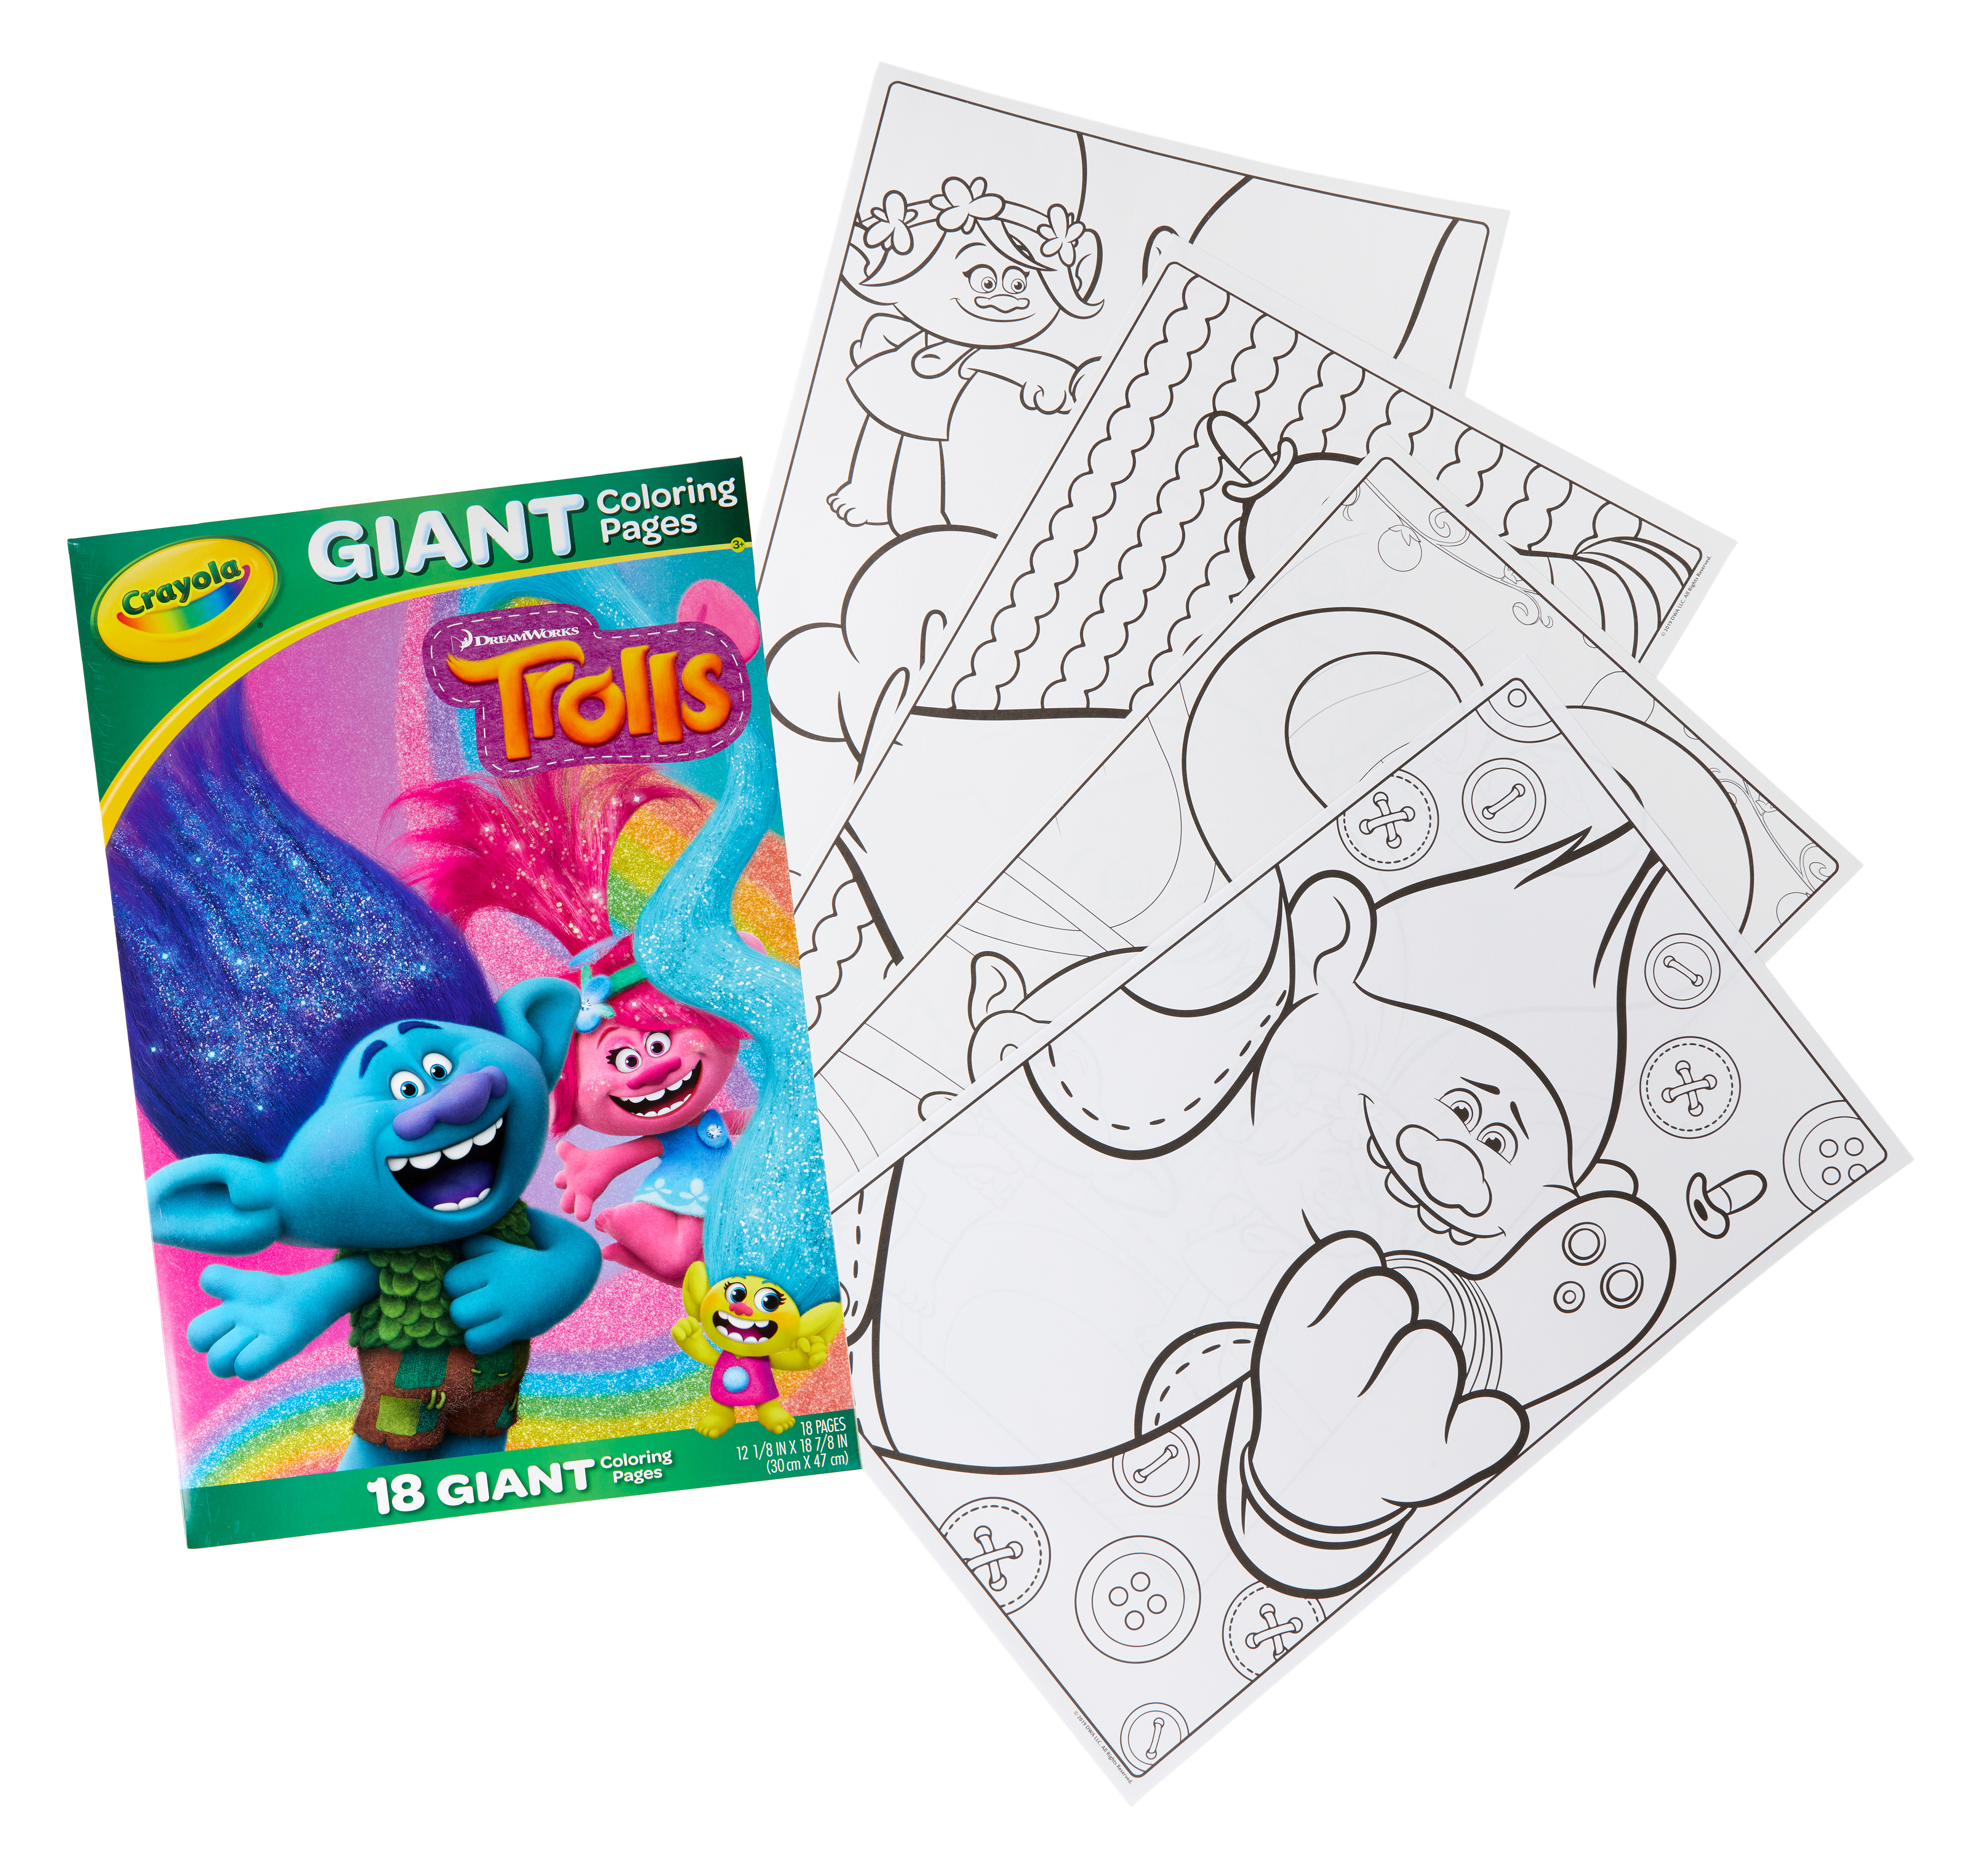 Crayola Trolls Giant Coloring Pages, Trolls Gift for Kids, 18 Pages, Child